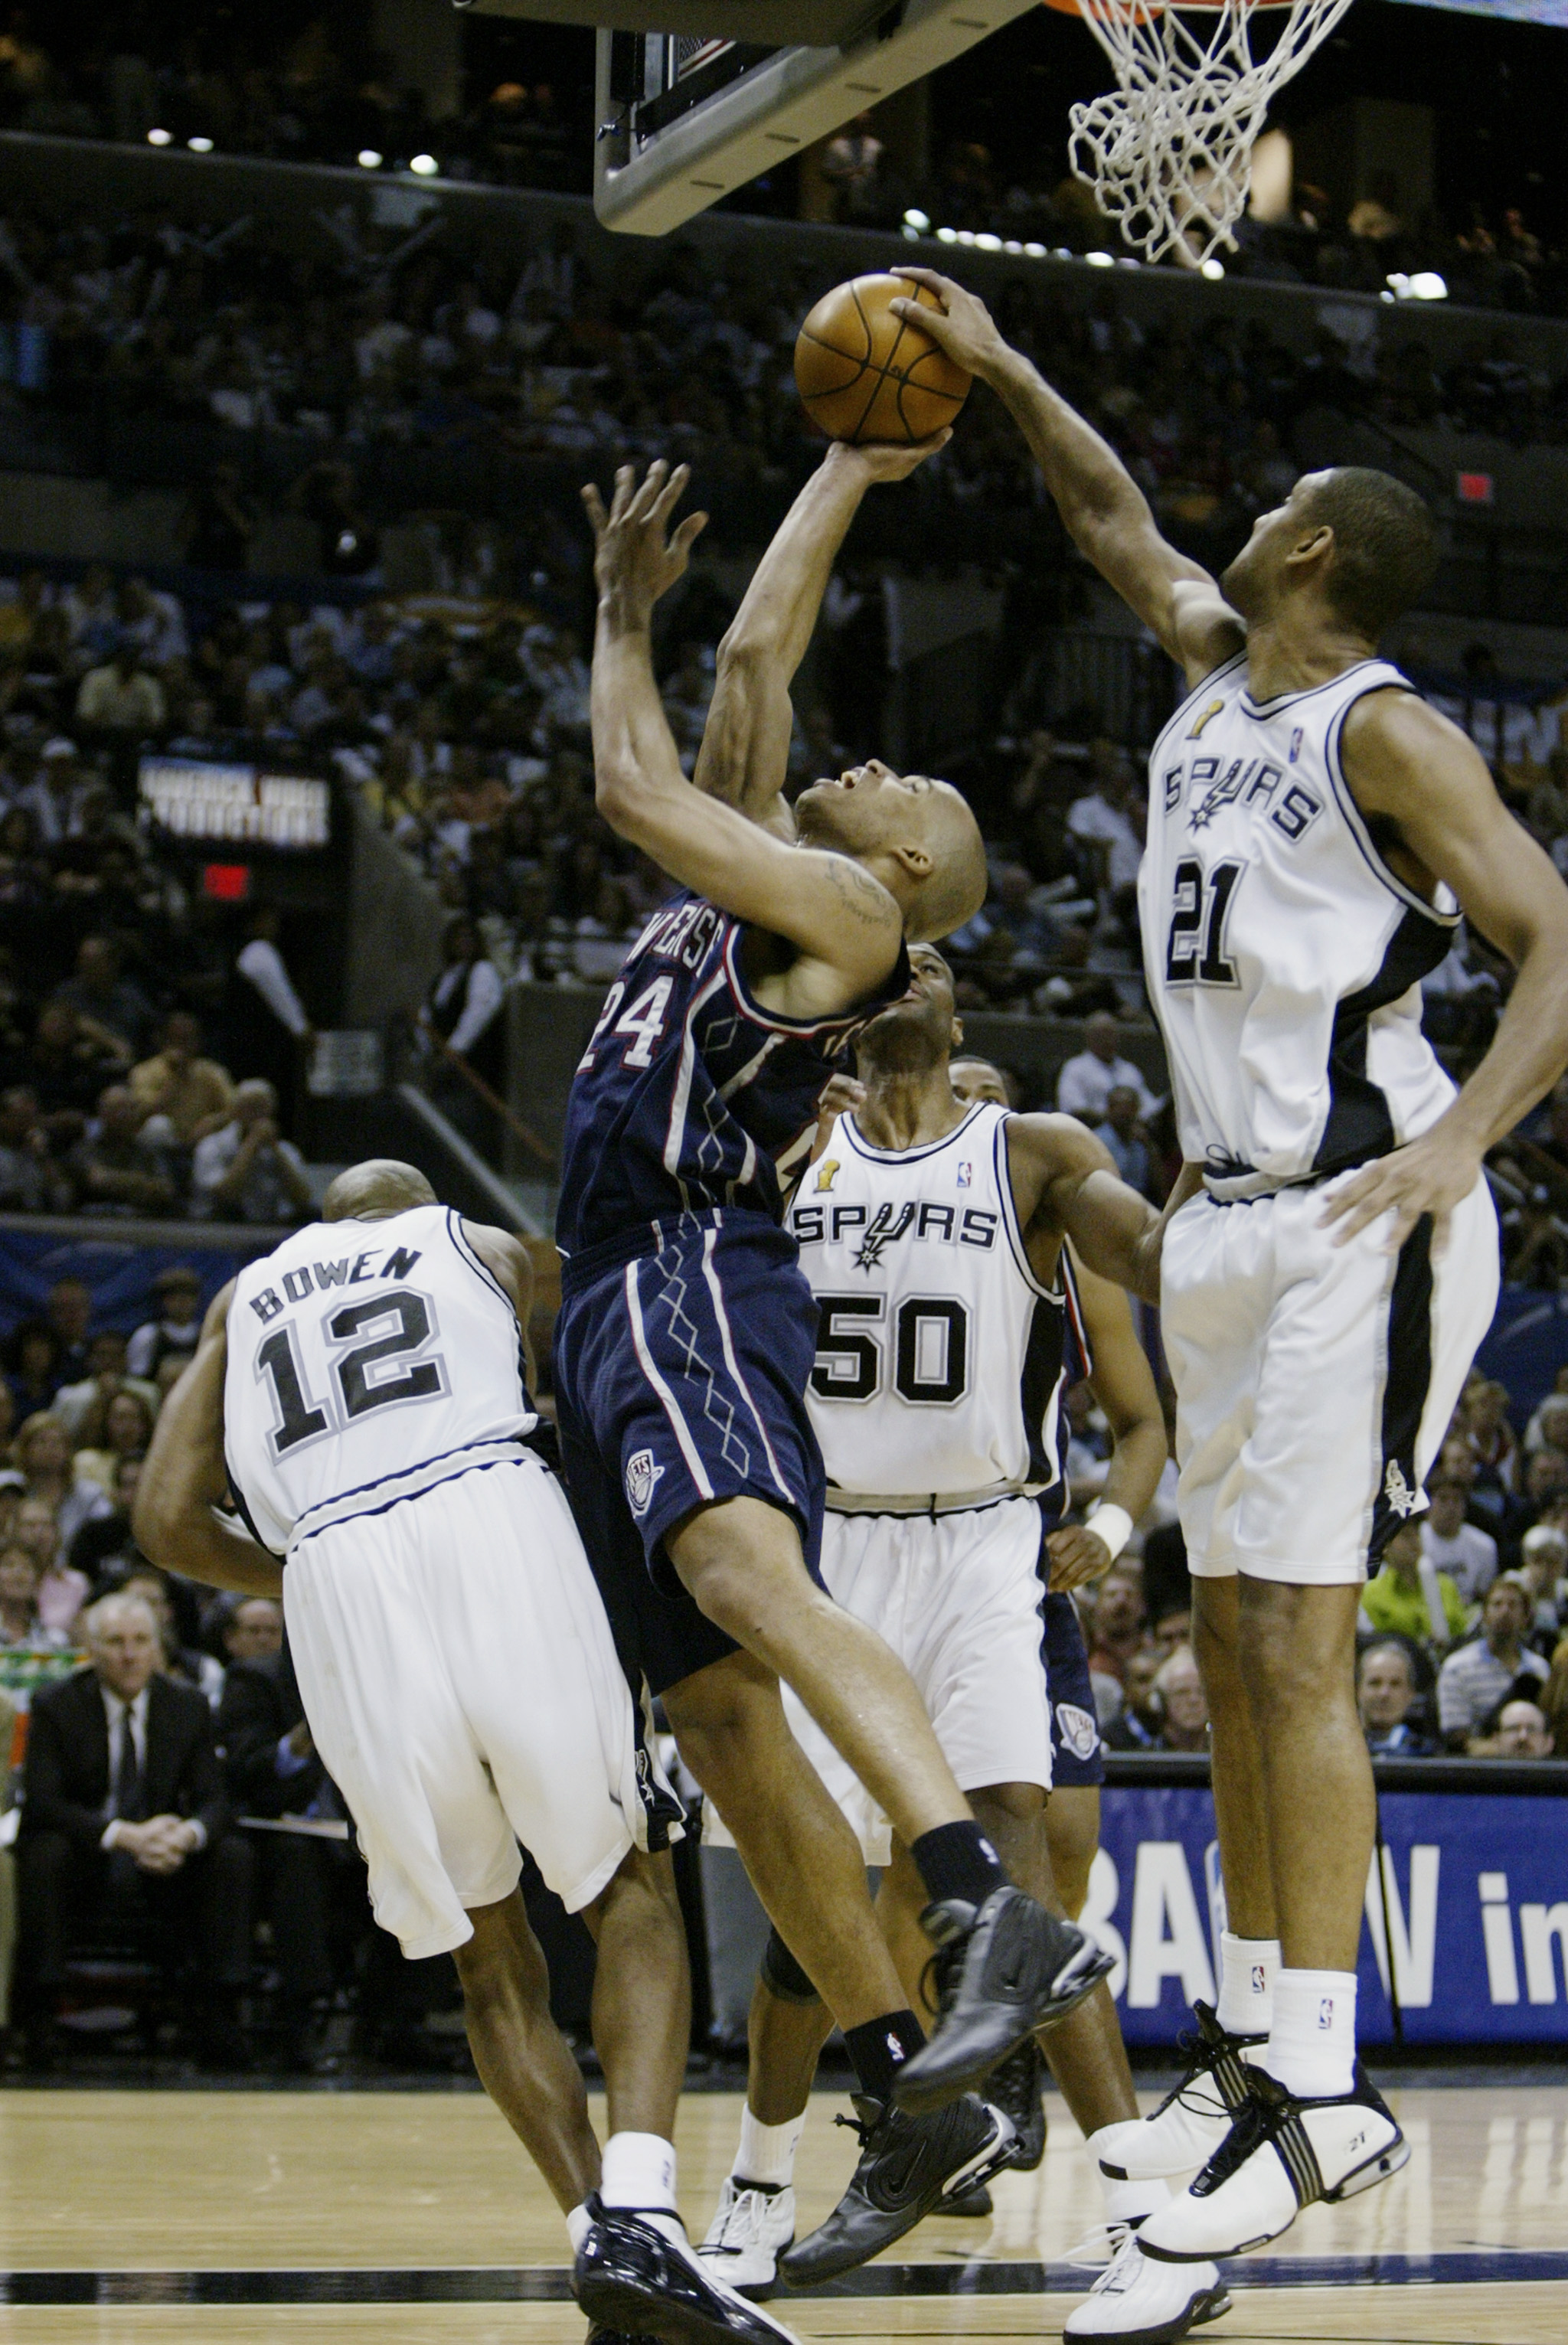 SAN ANTONIO, TX - JUNE 15:  Tim Duncan #21 of the San Antonio Spurs gets a hand on a shot by Richard Jefferson #24 of the New Jersey Nets during game six of the 2003 NBA Finals on June 15, 2003 at the SBC Center in San Antonio, Texas.  The Spurs won 88-77